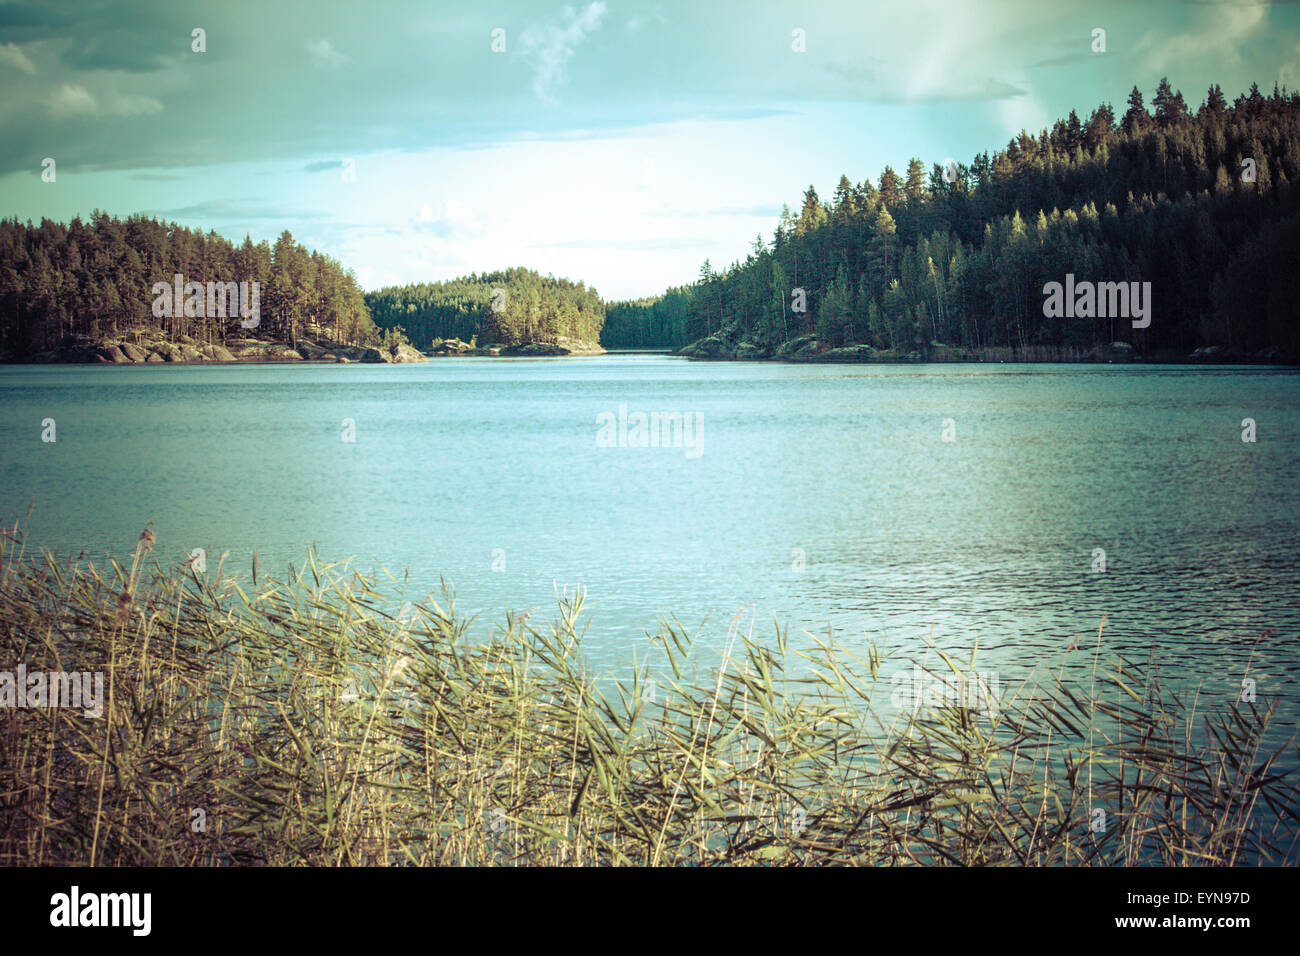 Vintage toned image of lake and forest, Finland Stock Photo